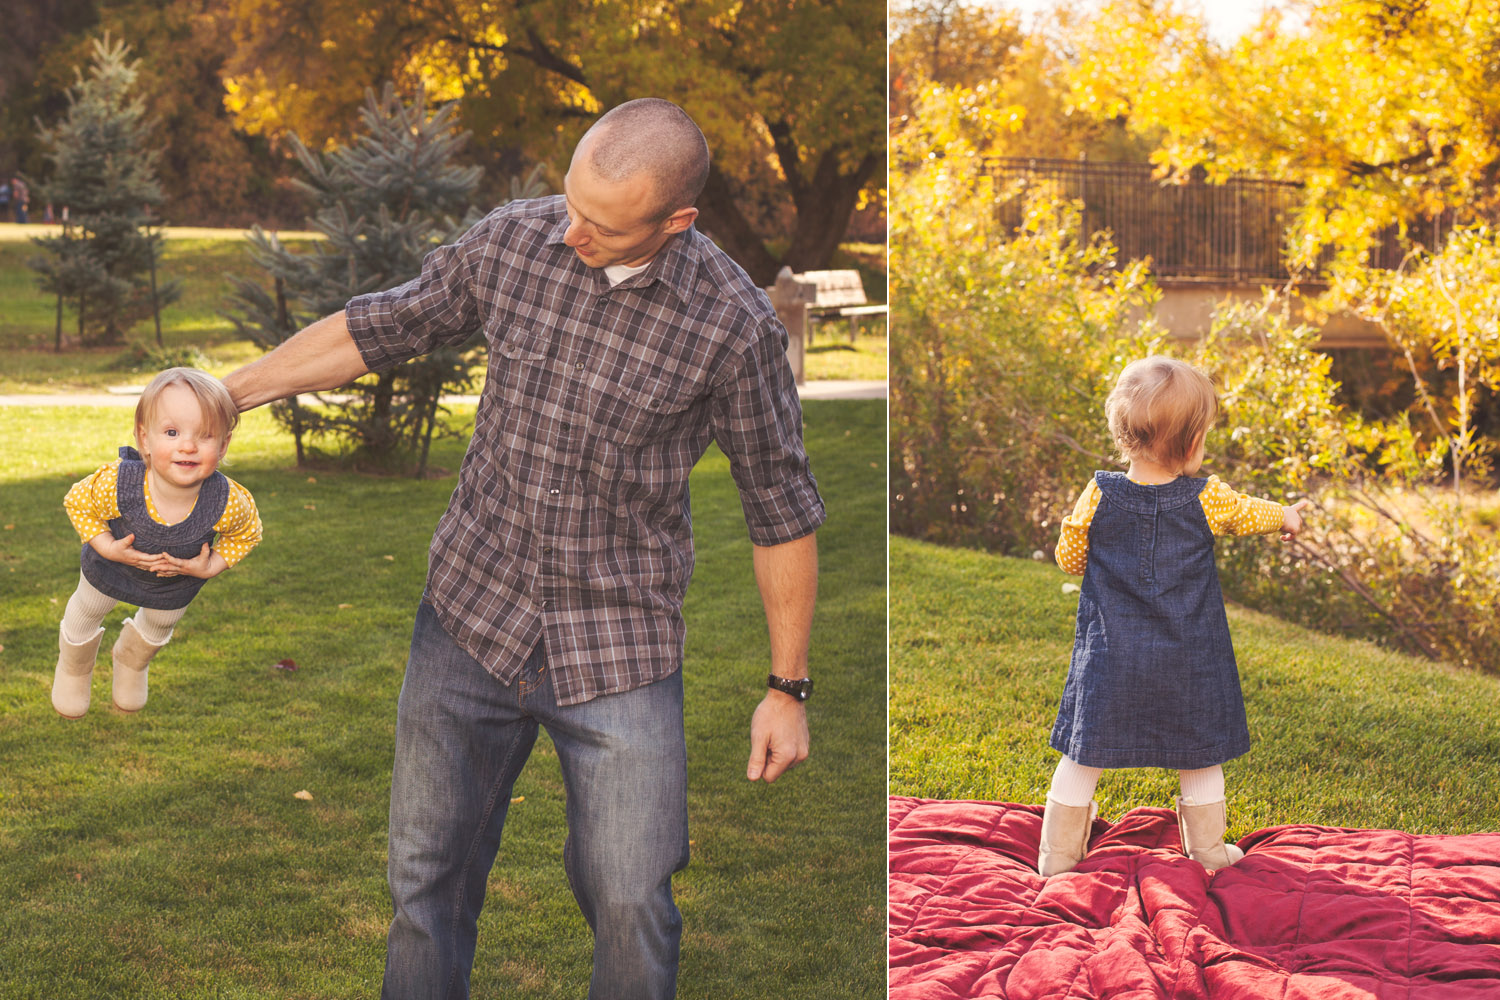 Northern_Utah_Photographer-WatkinsFamilyPhotos-4.jpg